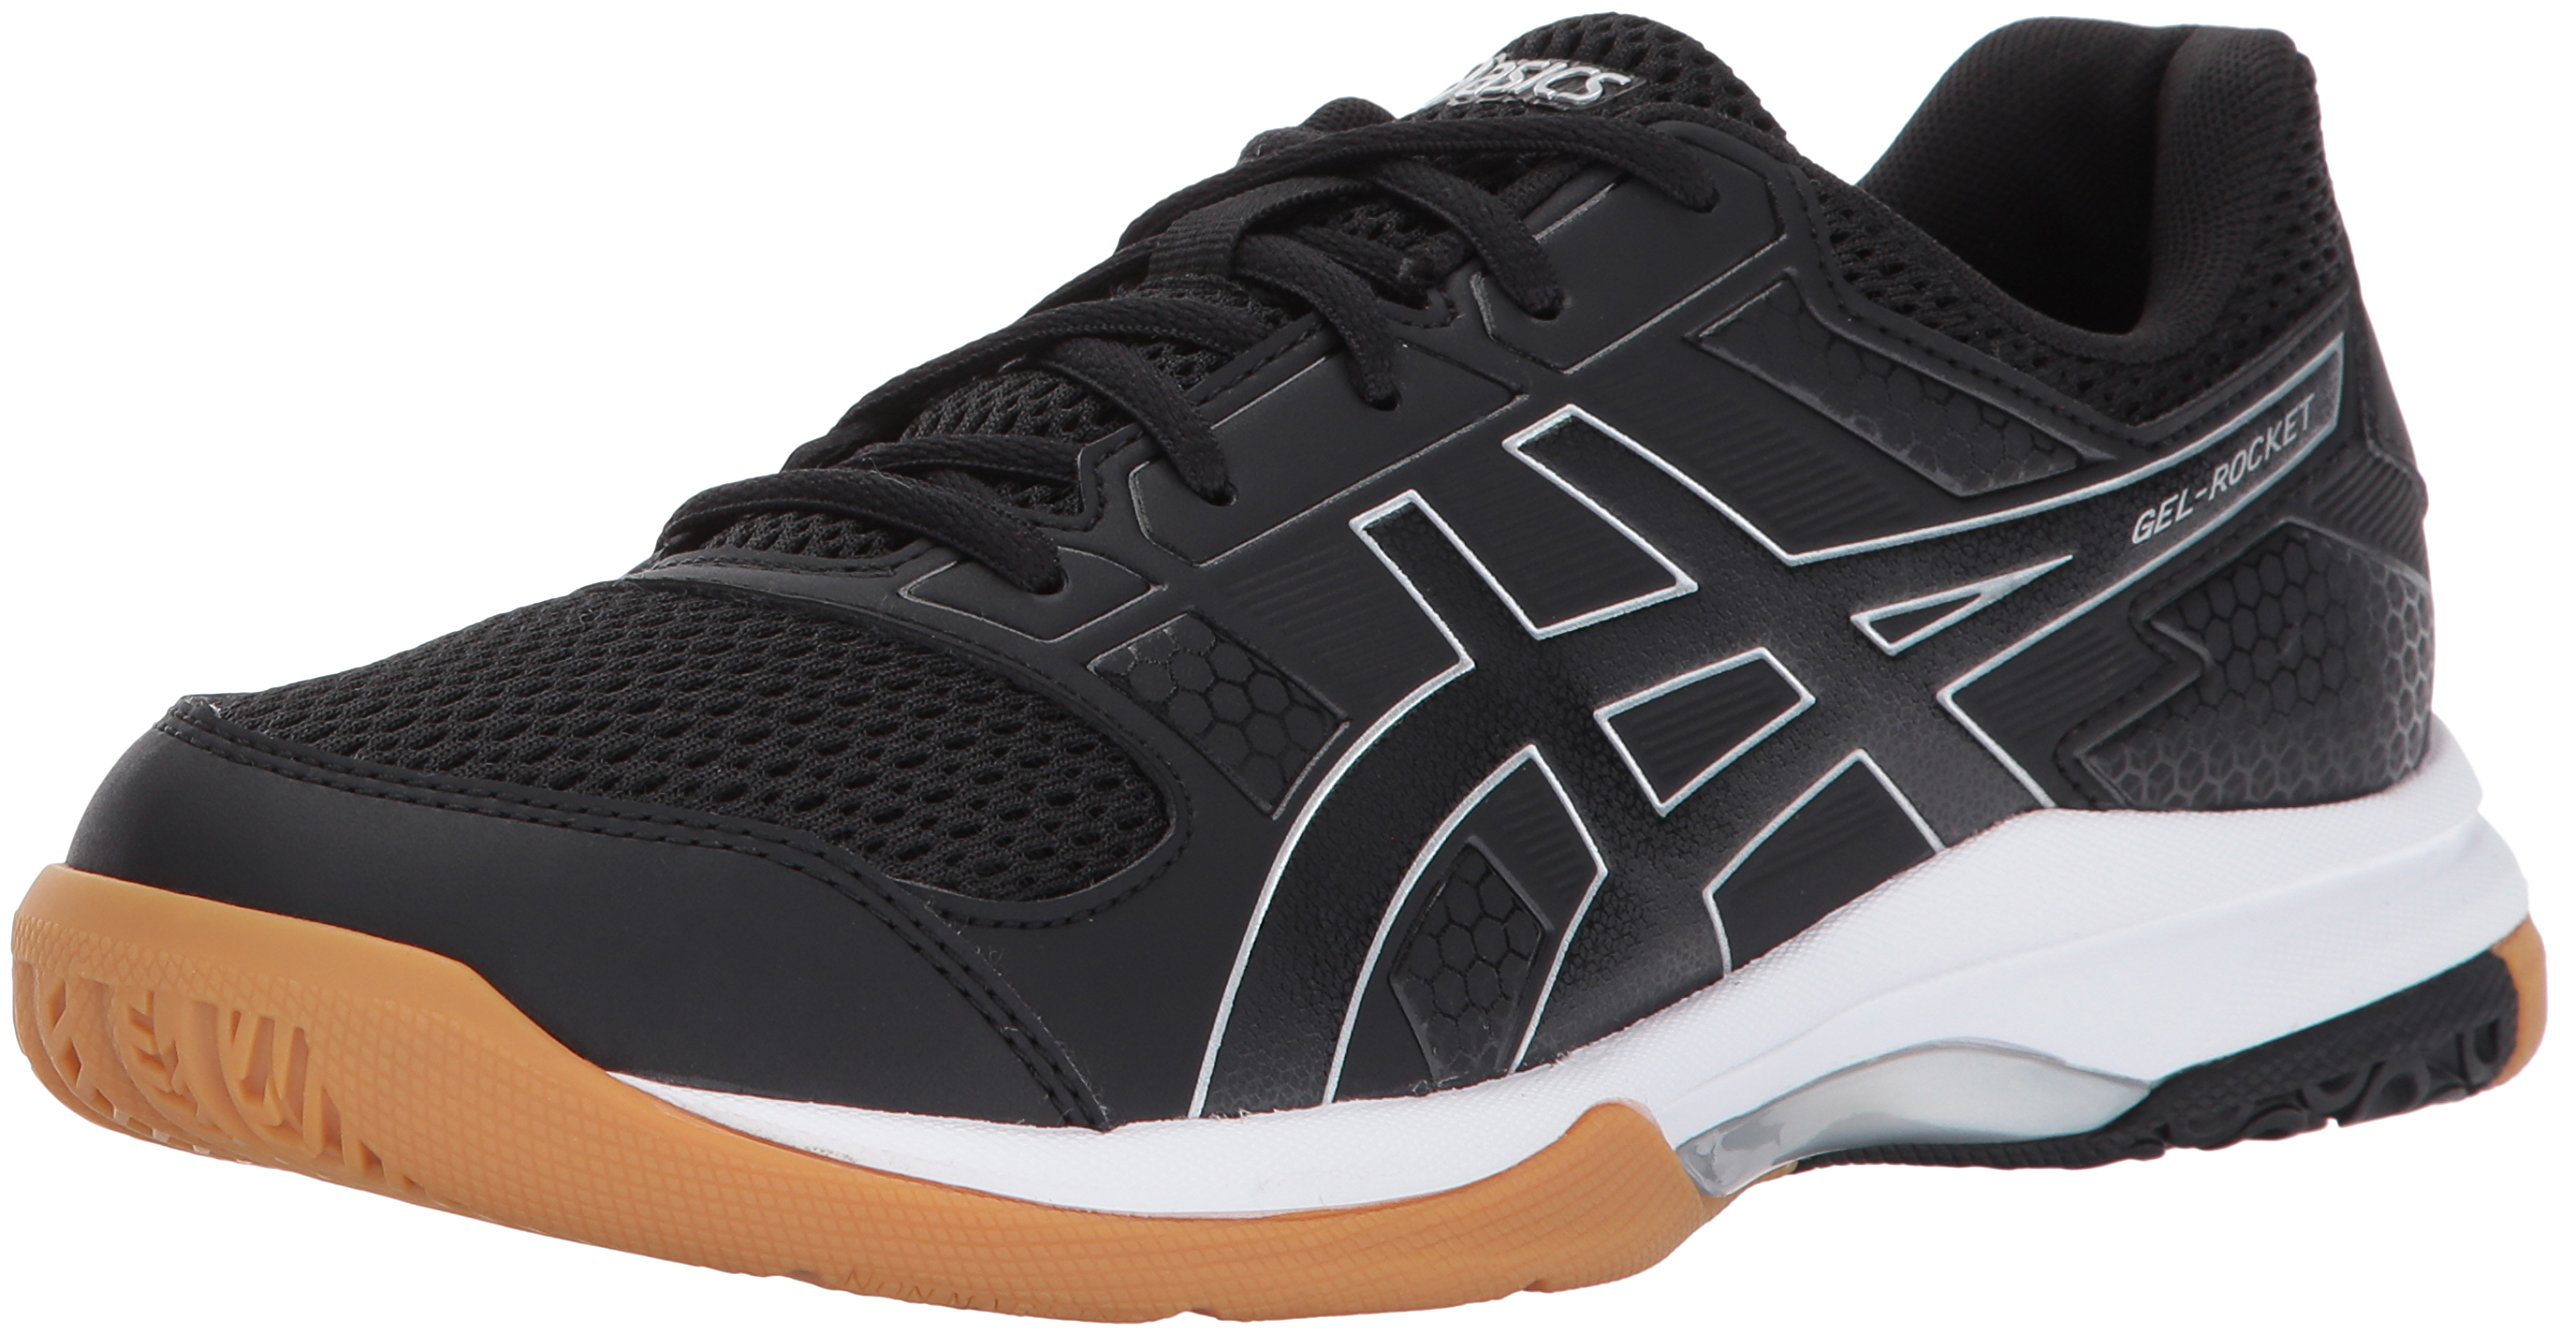 in stock d2aa4 159c2 ASICS Womens Gel-Rocket 8 Volleyball Shoe